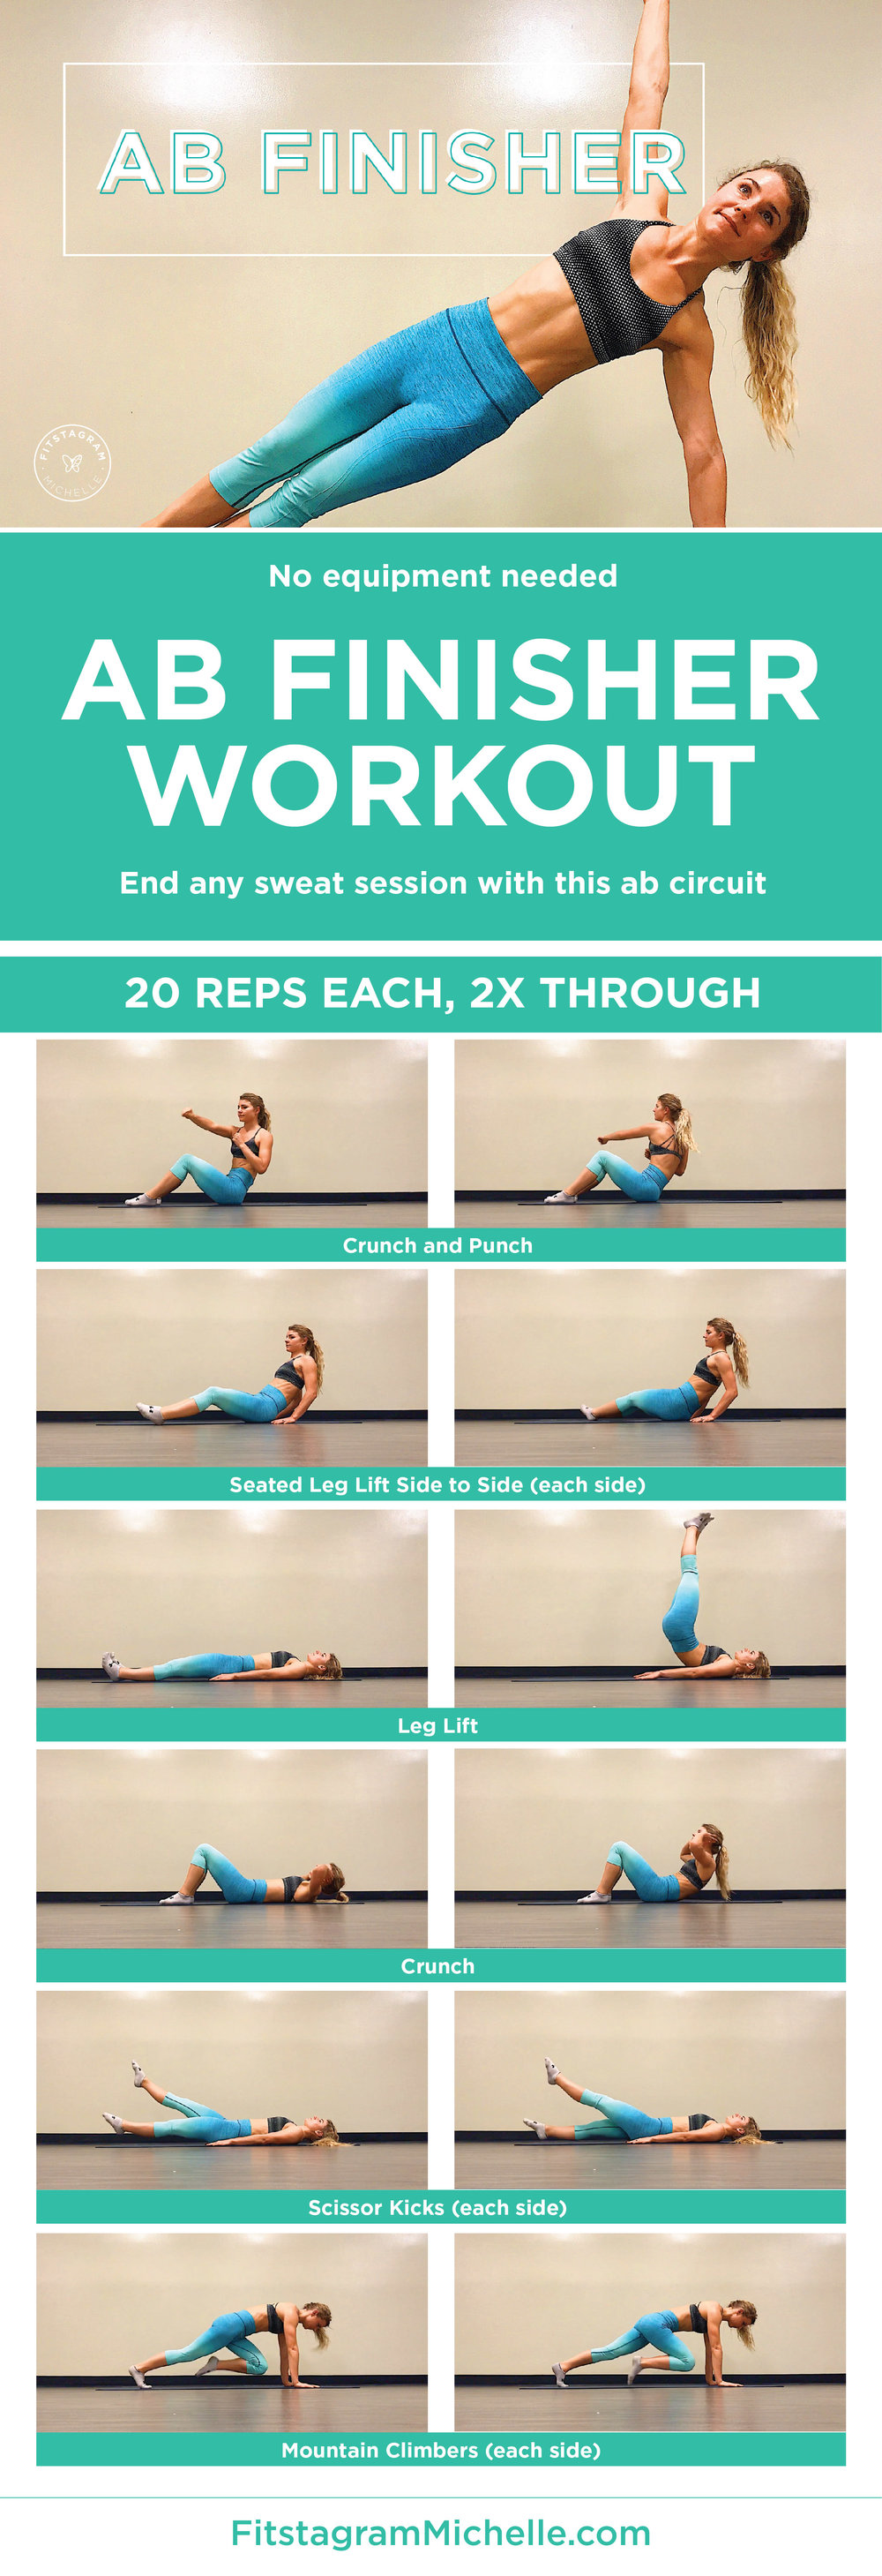 AB Finisher Workout. Add this short workout to the end of any workout and you will burn your abs. Get tight and toned waist-line in five simple moves. No equipment needed. At-home or at the gym!